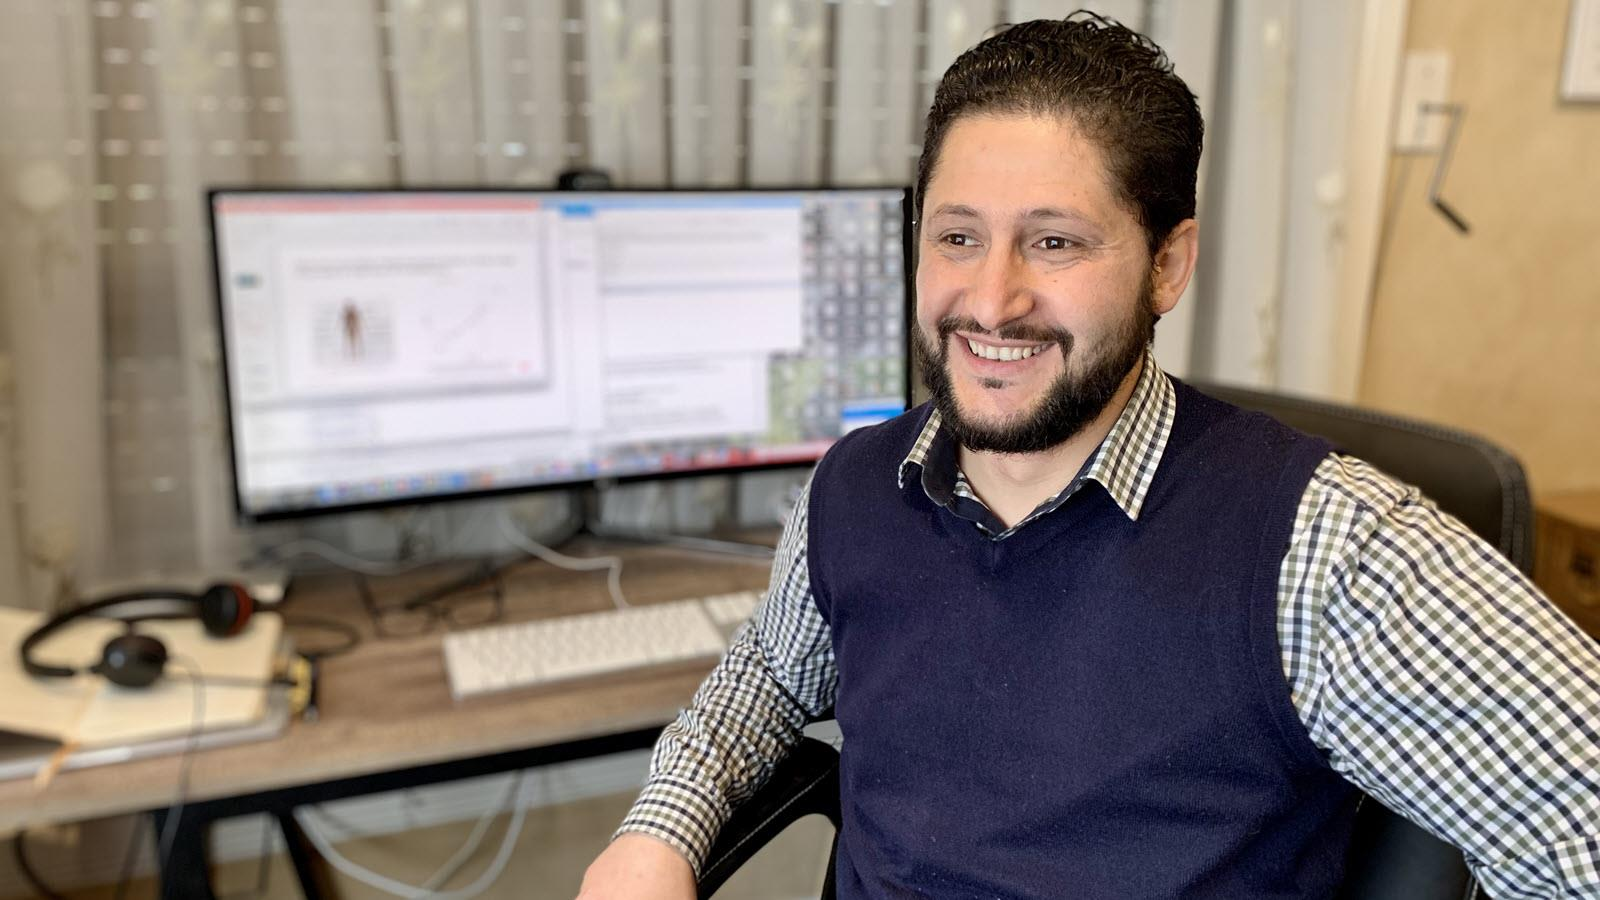 Monther Alhamdoosh, CSL Director, Head of Bioinformatics and AI at Global Research Data Science, at his desk